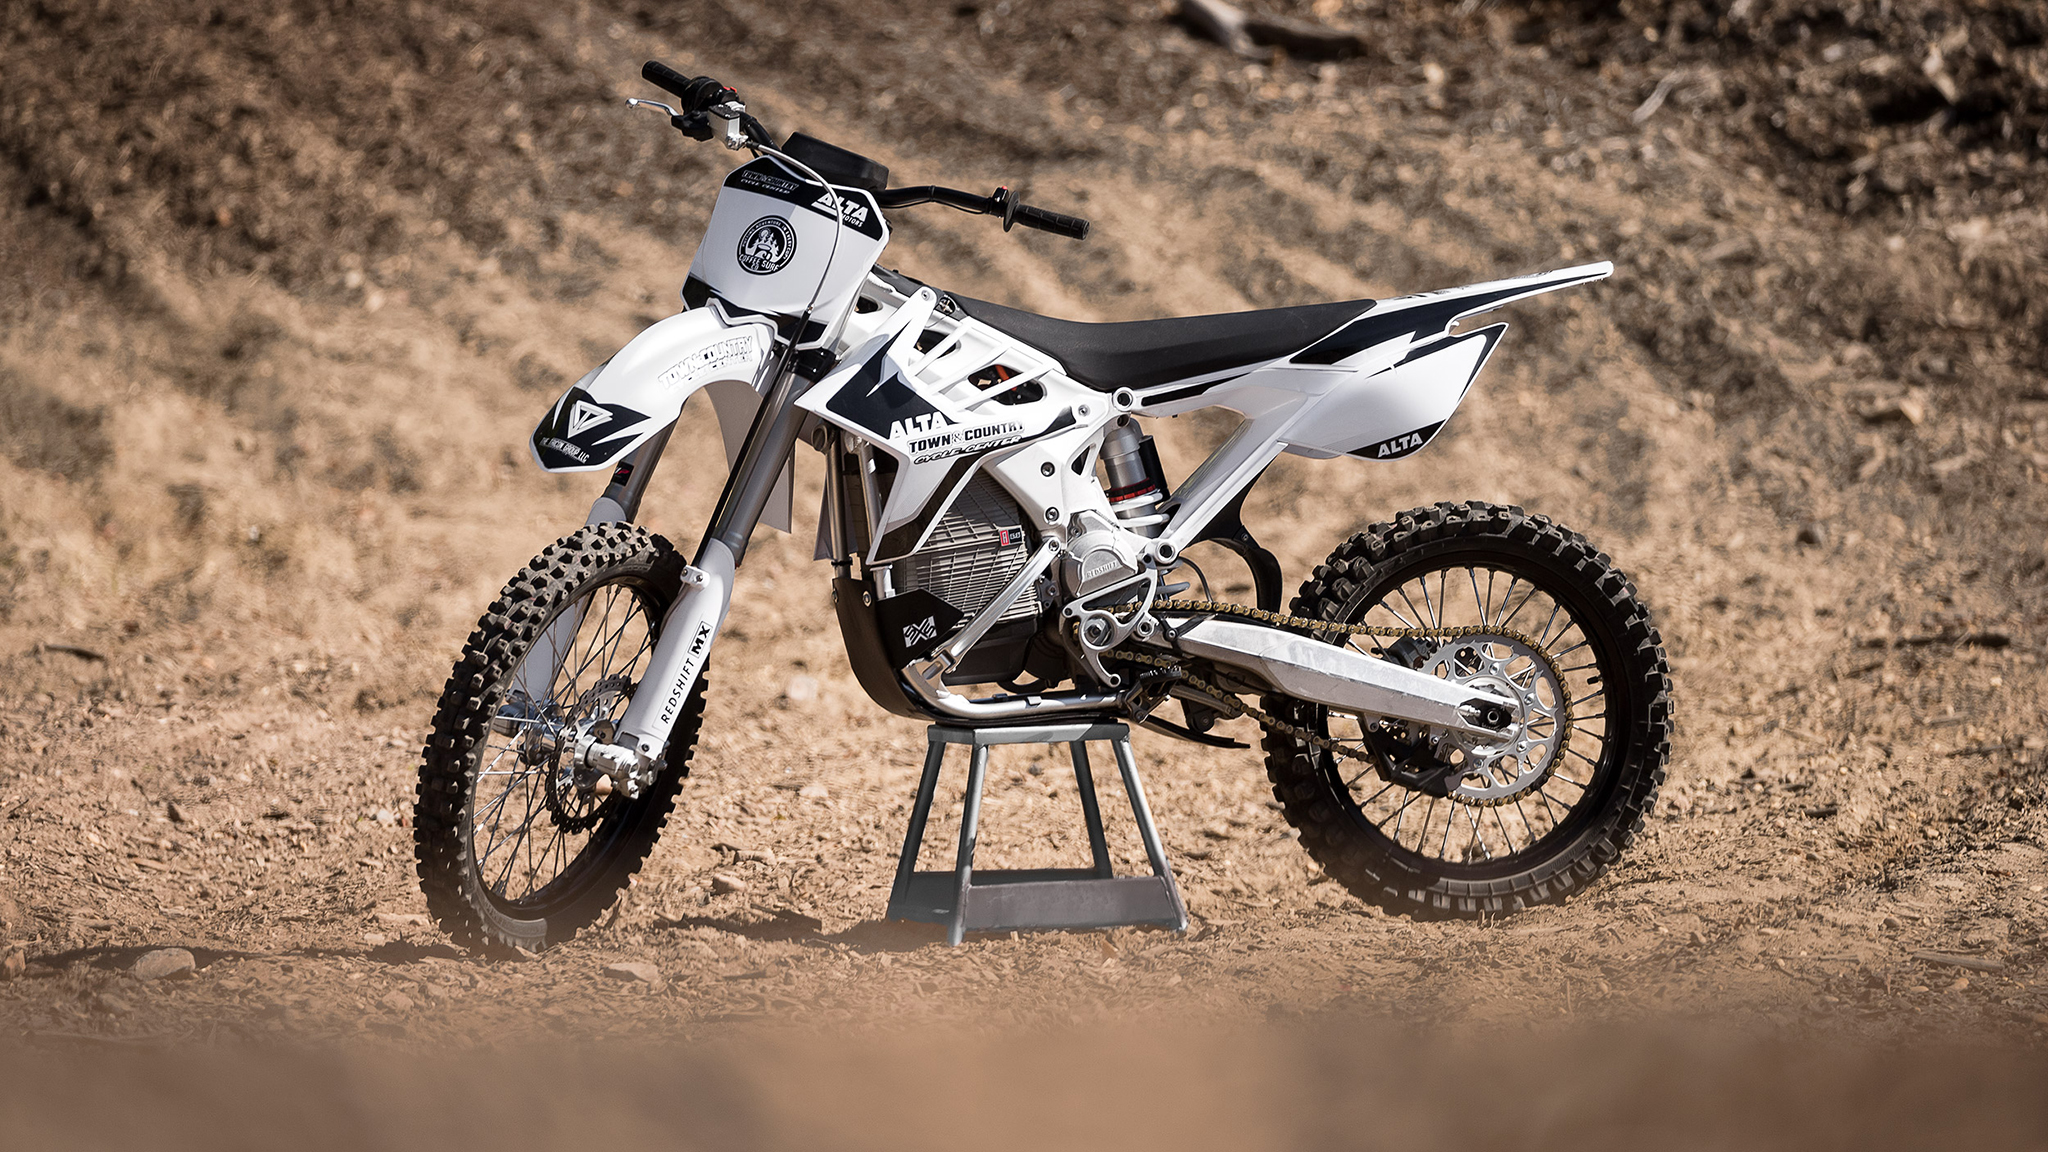 Gear: The Alta Redshift MX